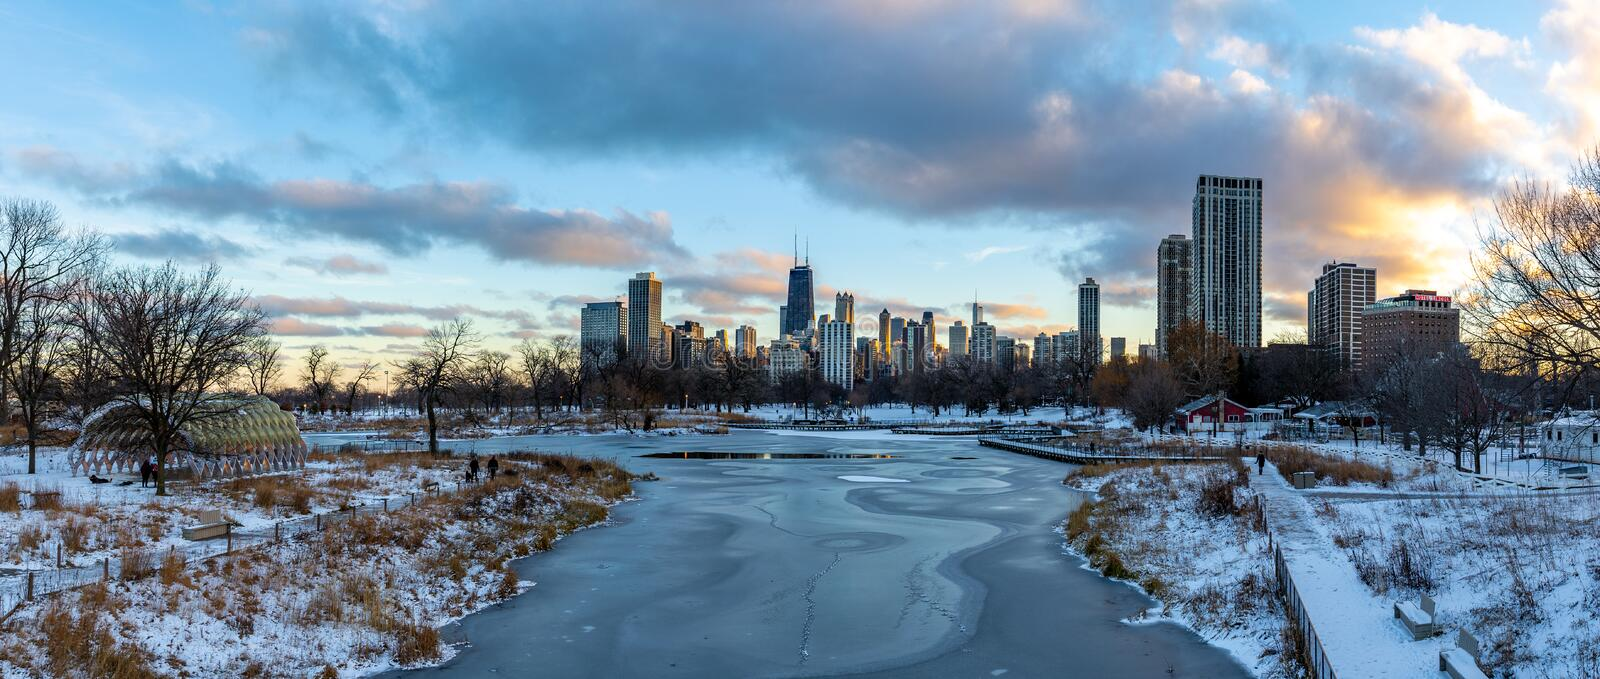 Chicago. Located on the shores of Lake Michigan, Chicago was incorporated as a city in 1837 near a portage between the Great Lakes and the Mississippi River royalty free stock photography